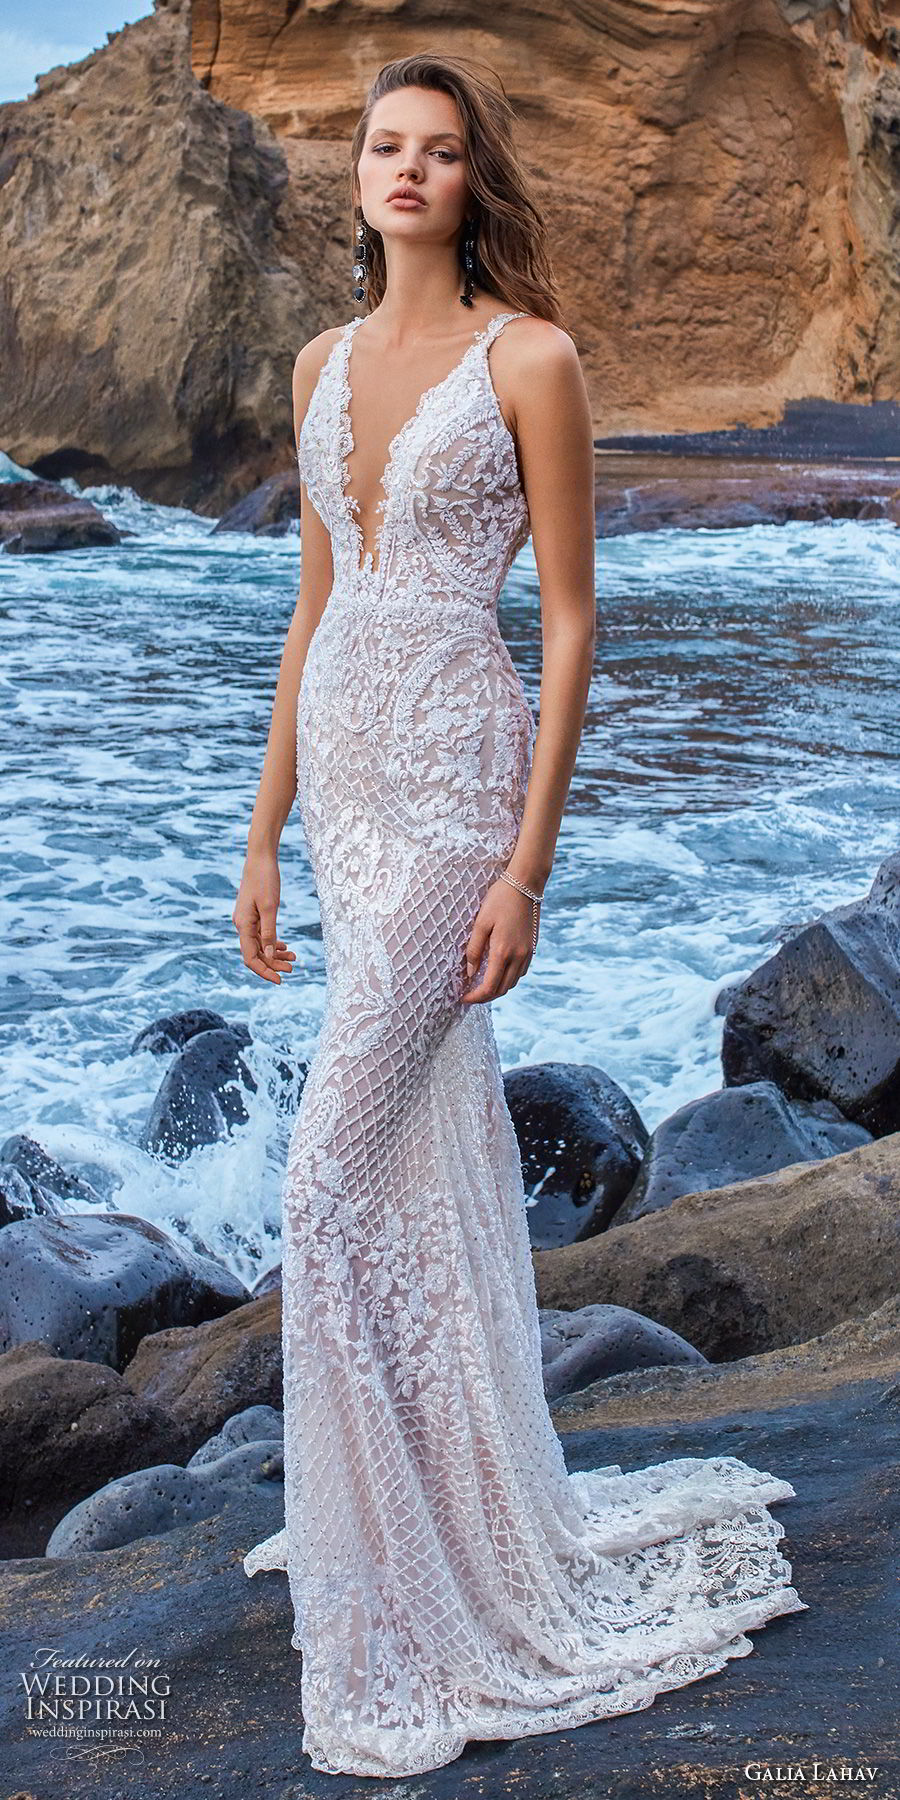 galia lahav gala 2018 bridal sleeveless with strap deep v neck full embellishment elegant fit and flare sheath wedding dress open low back sweep train (13) mv